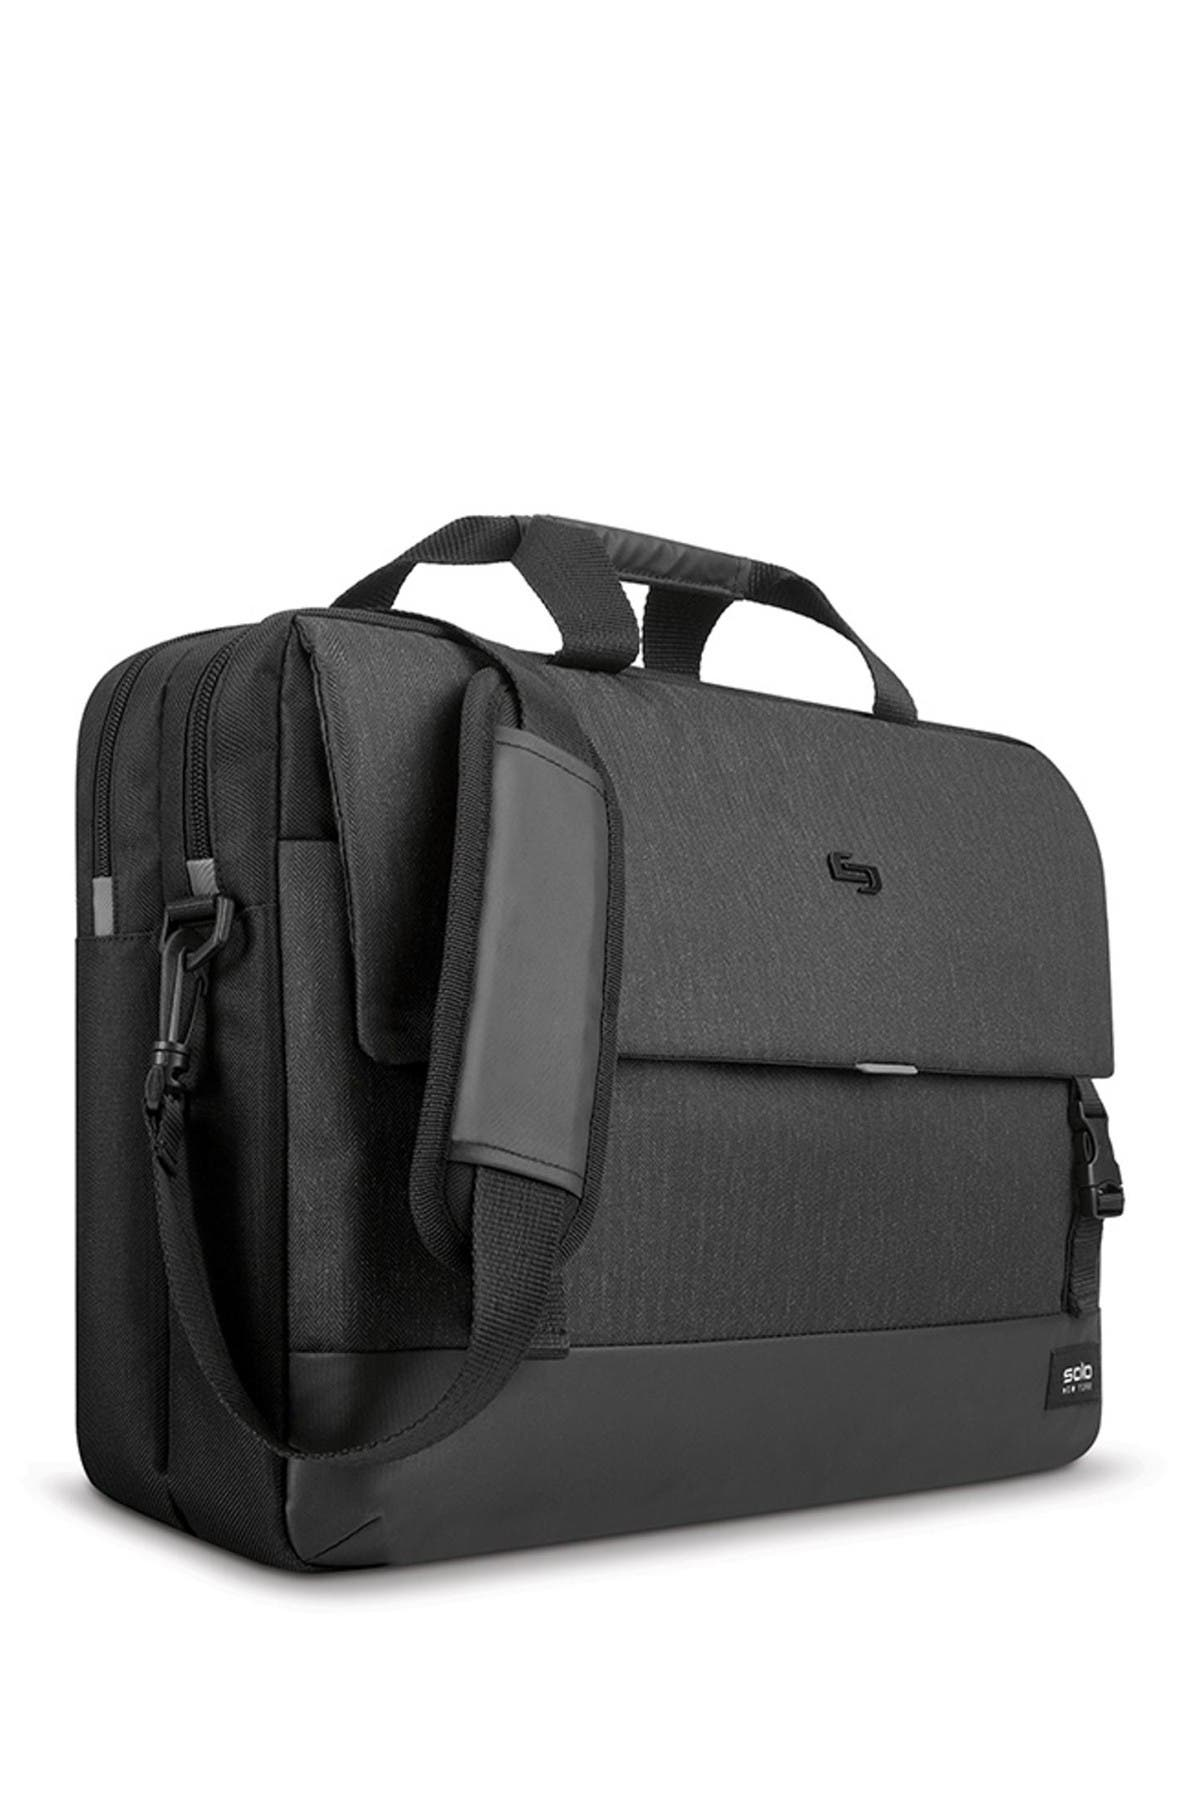 Image of SOLO NEW YORK Solo Notch Briefcase